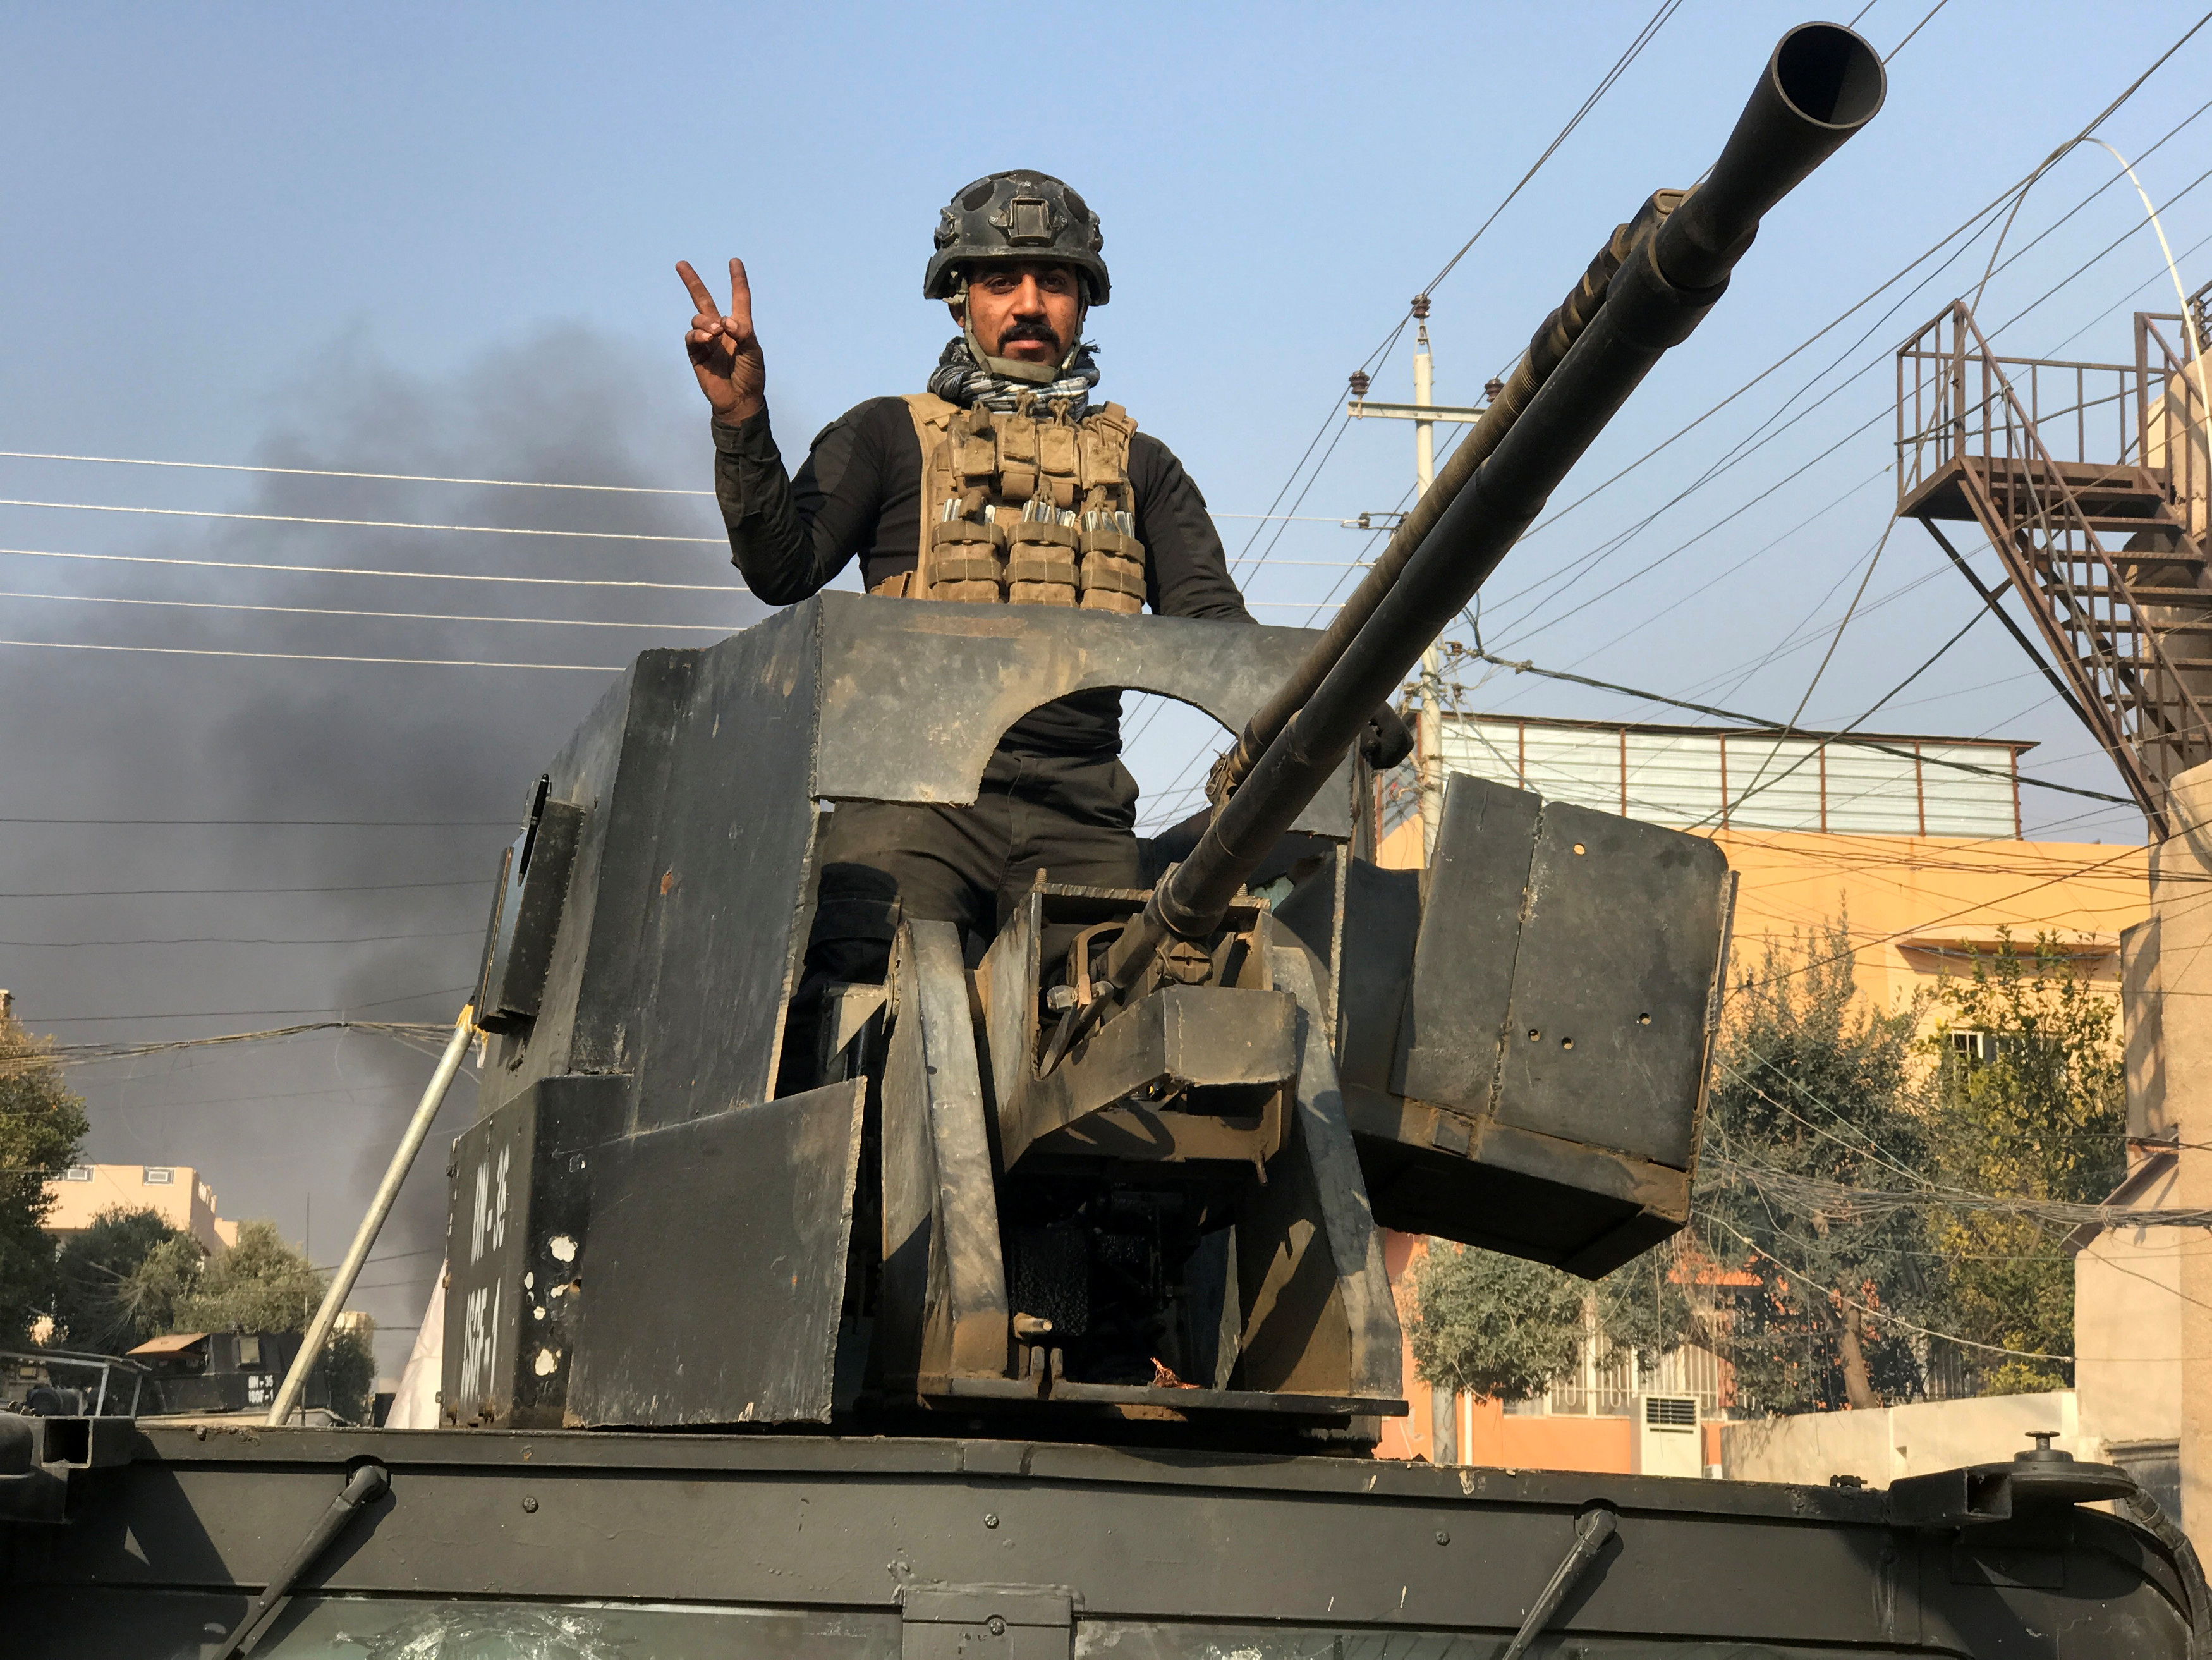 A member of Iraqi security forces stands in a military vehicle in Baladiyat district, east of Mosul during a fight with Islamic State, Jan. 9, 2017.